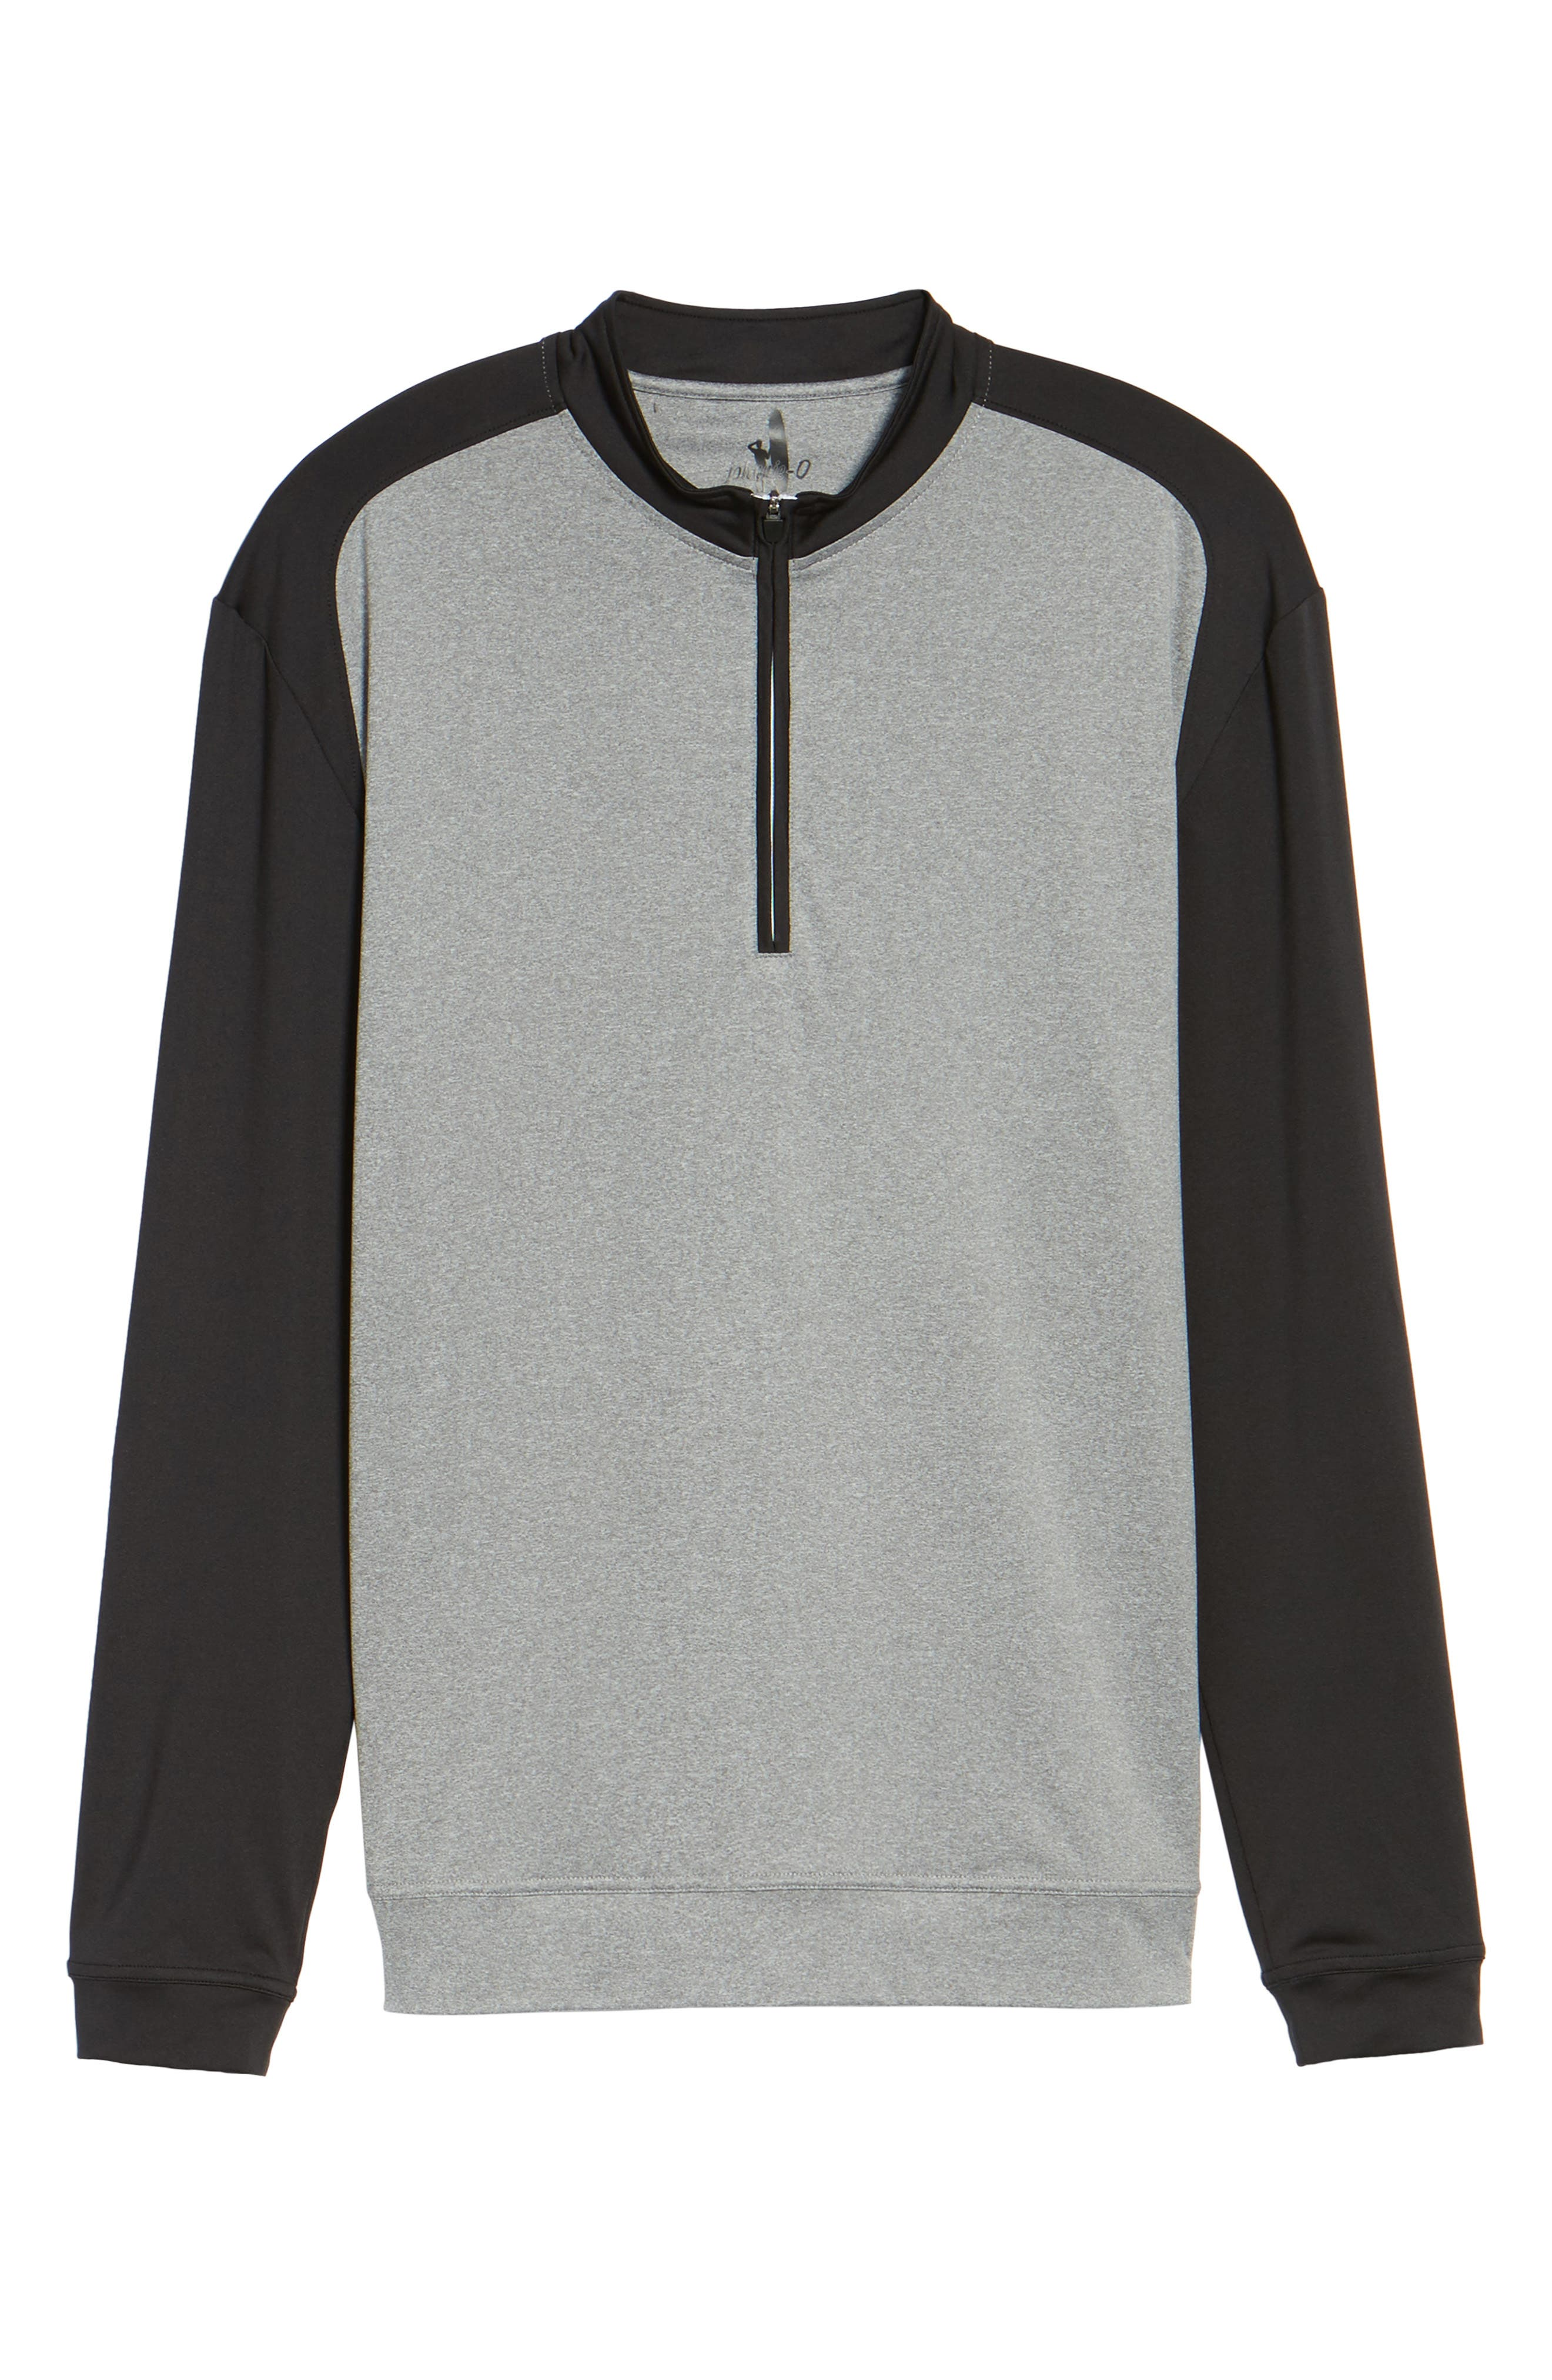 Sway Classic Fit Zip Raglan Pullover,                             Alternate thumbnail 6, color,                             001